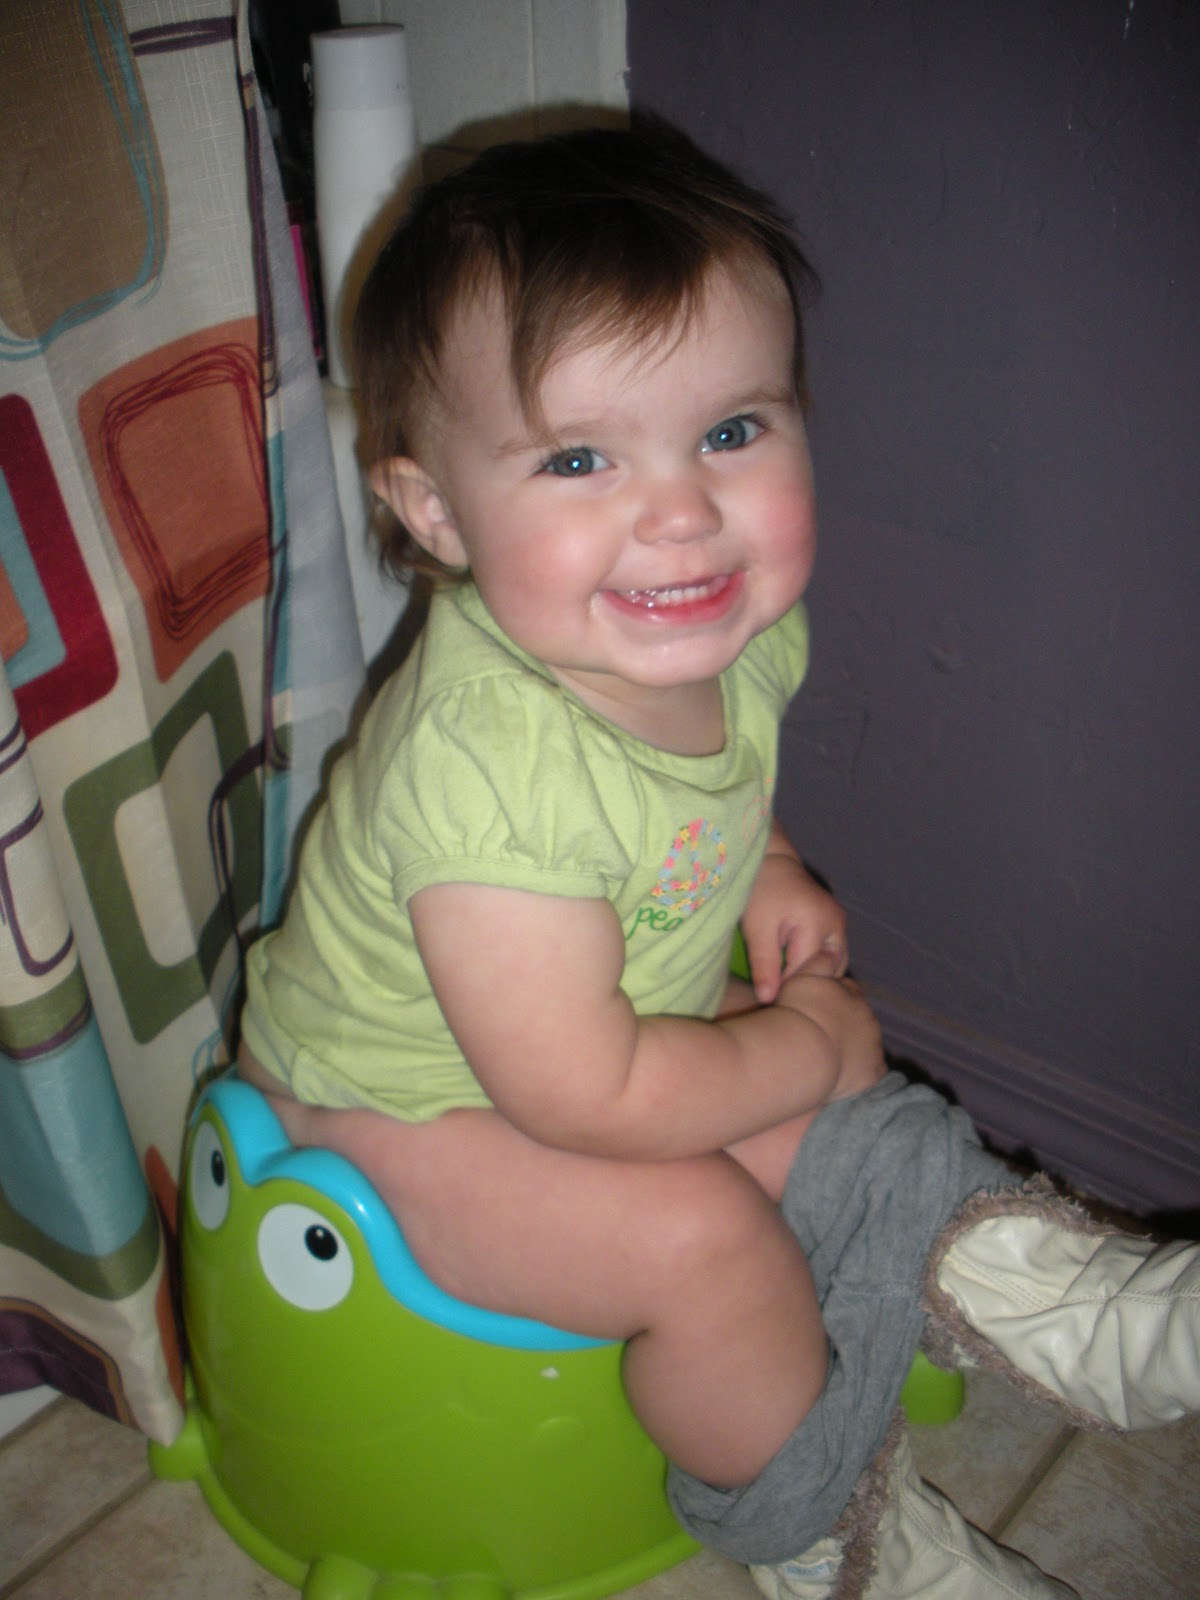 Olive Baby Olive On The Potty